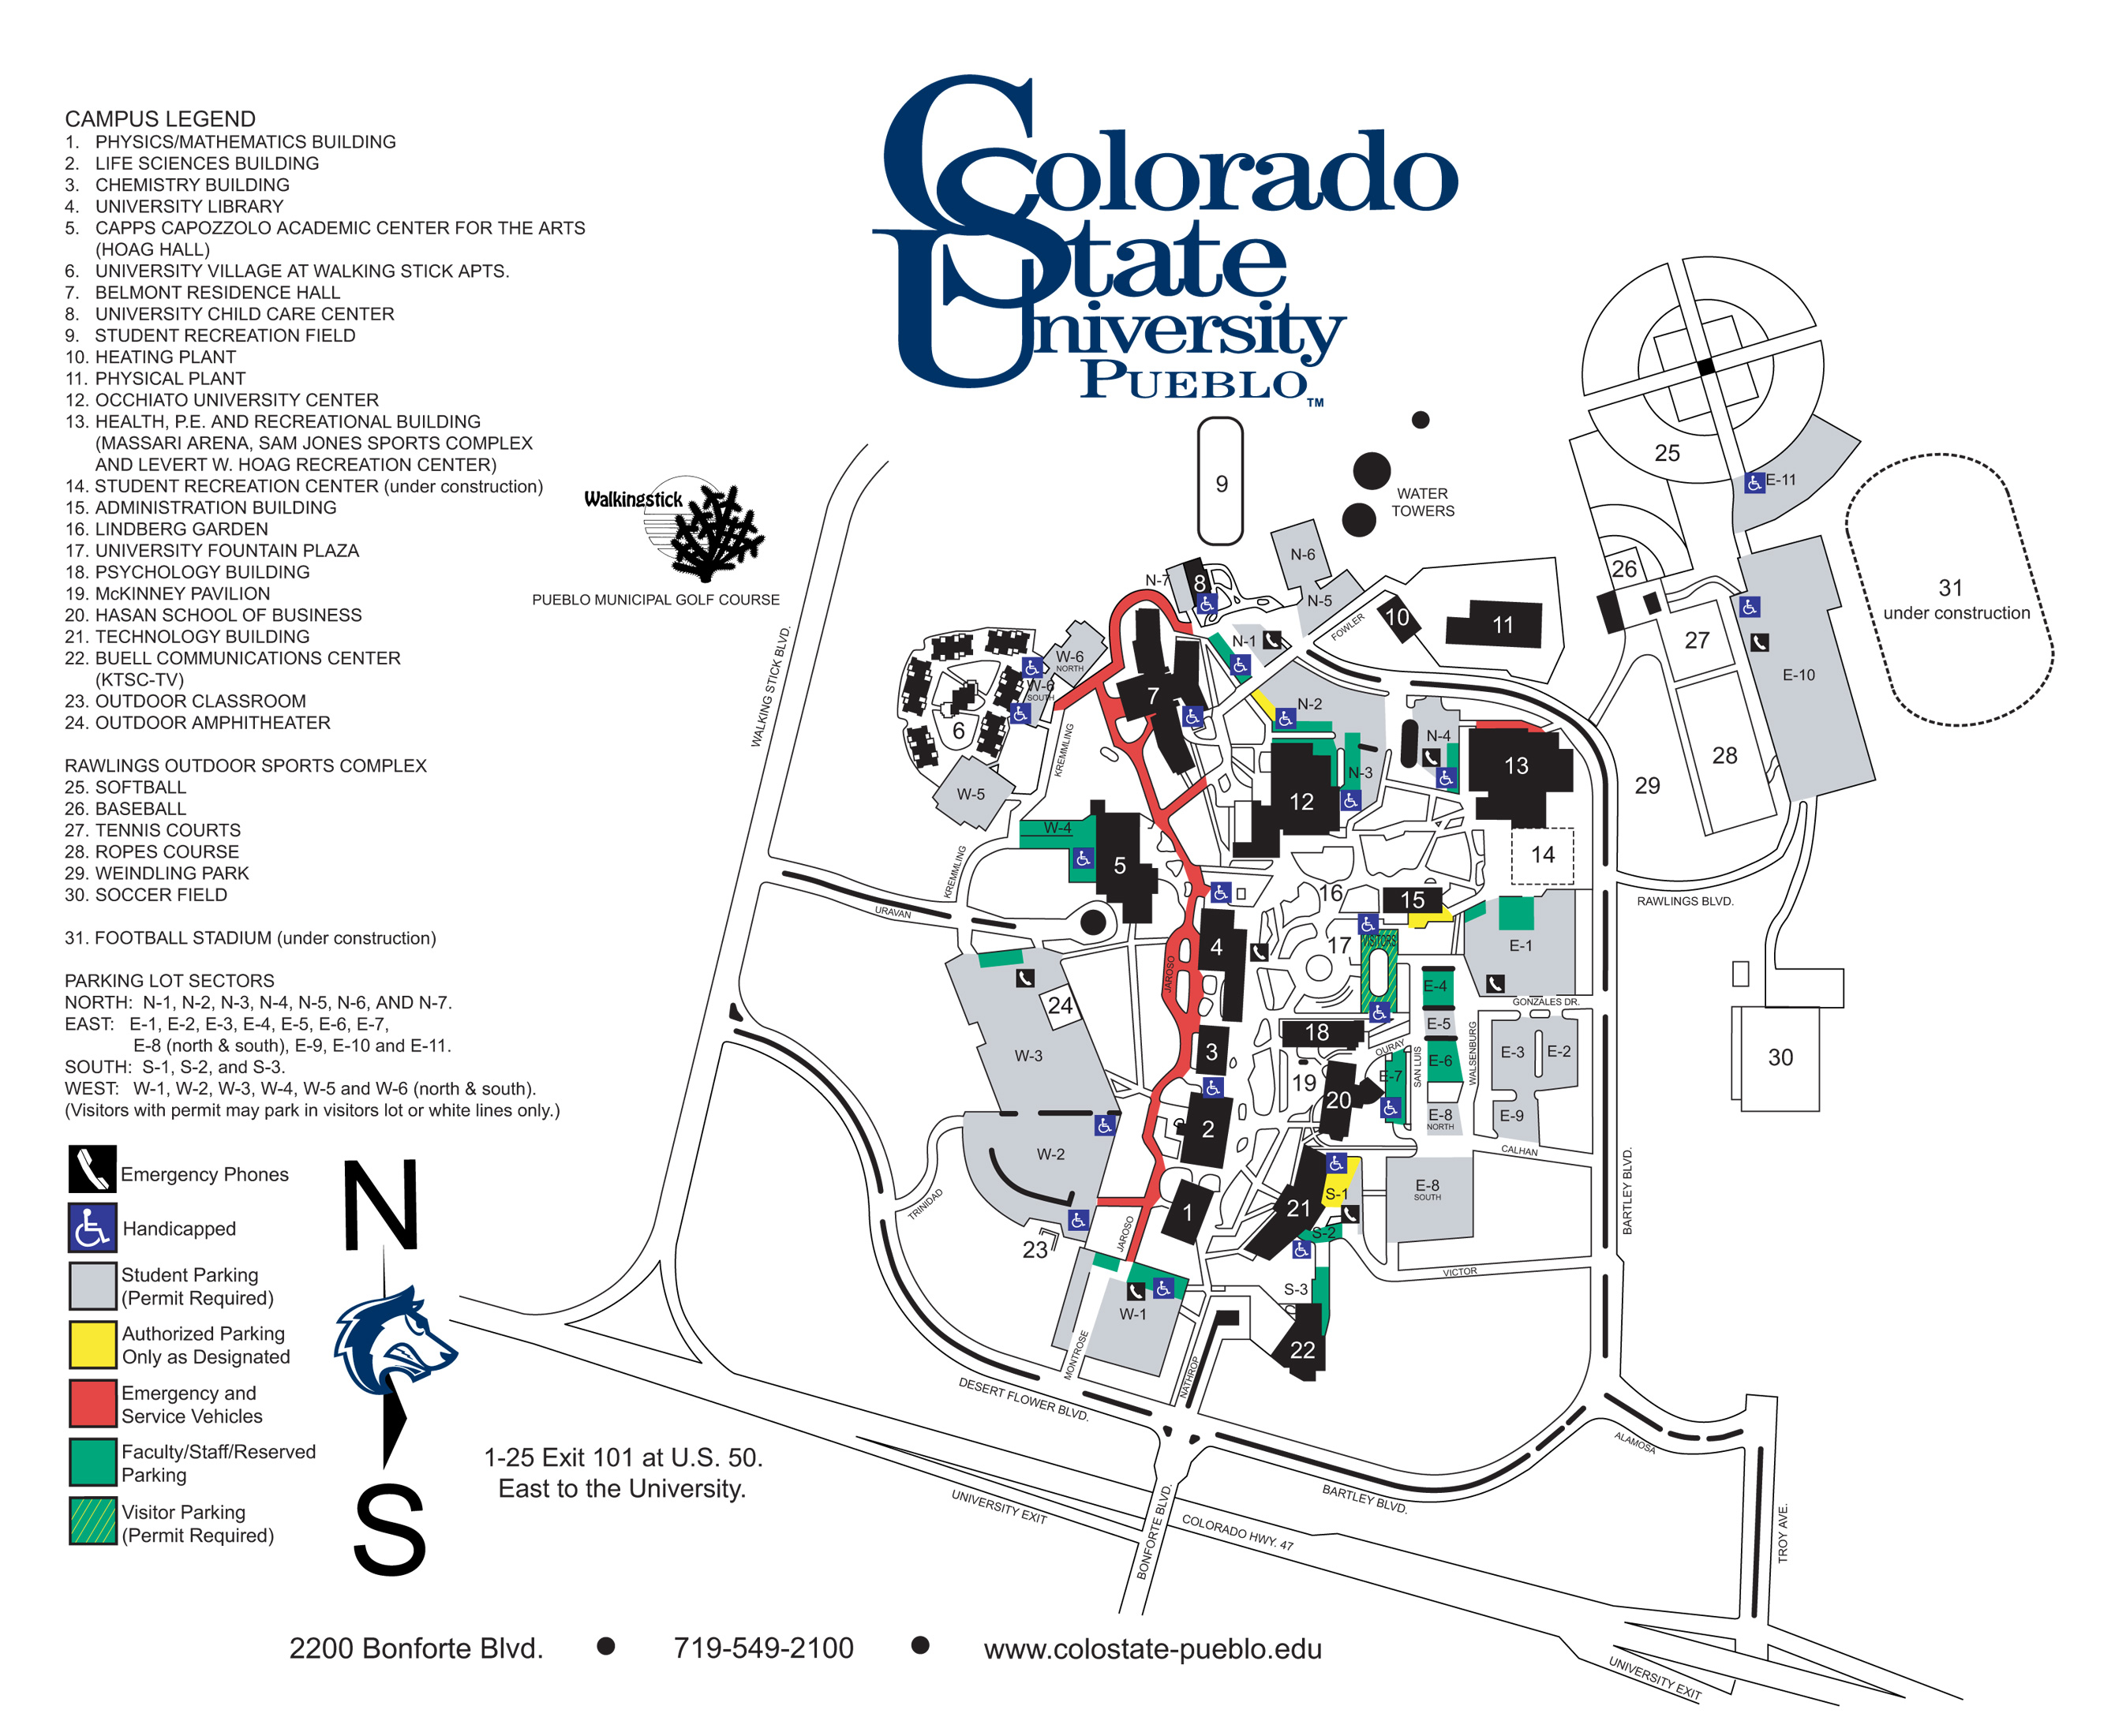 Colorado State University  Pueblo Campus Map  2200